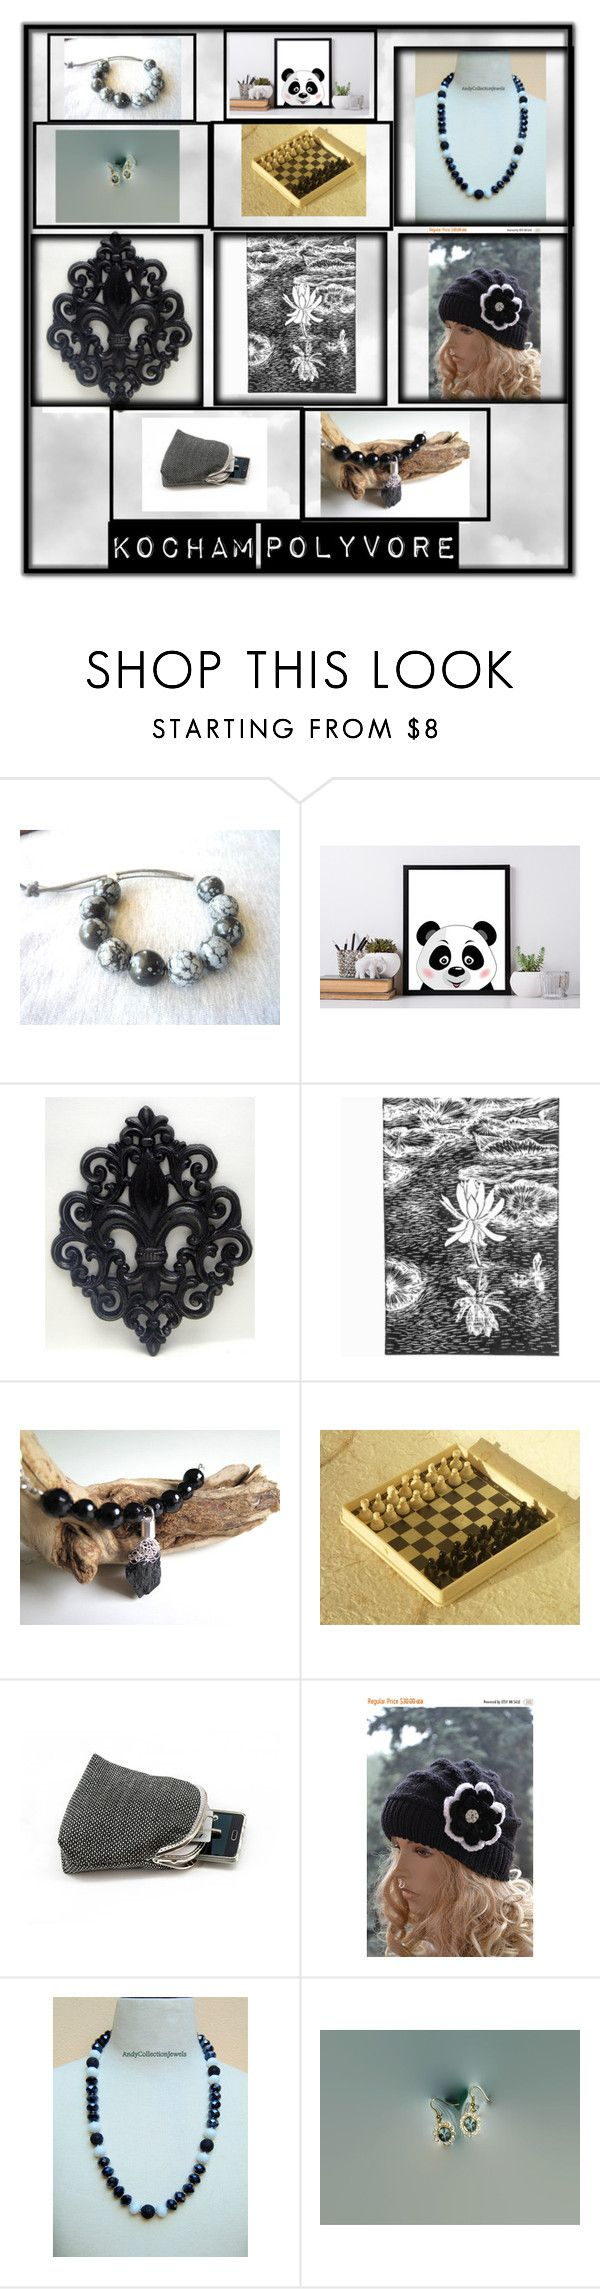 Black & white etsy treasury by dorota-kujawa on Polyvore featuring etsy, polyvorecontest and yoinscollection